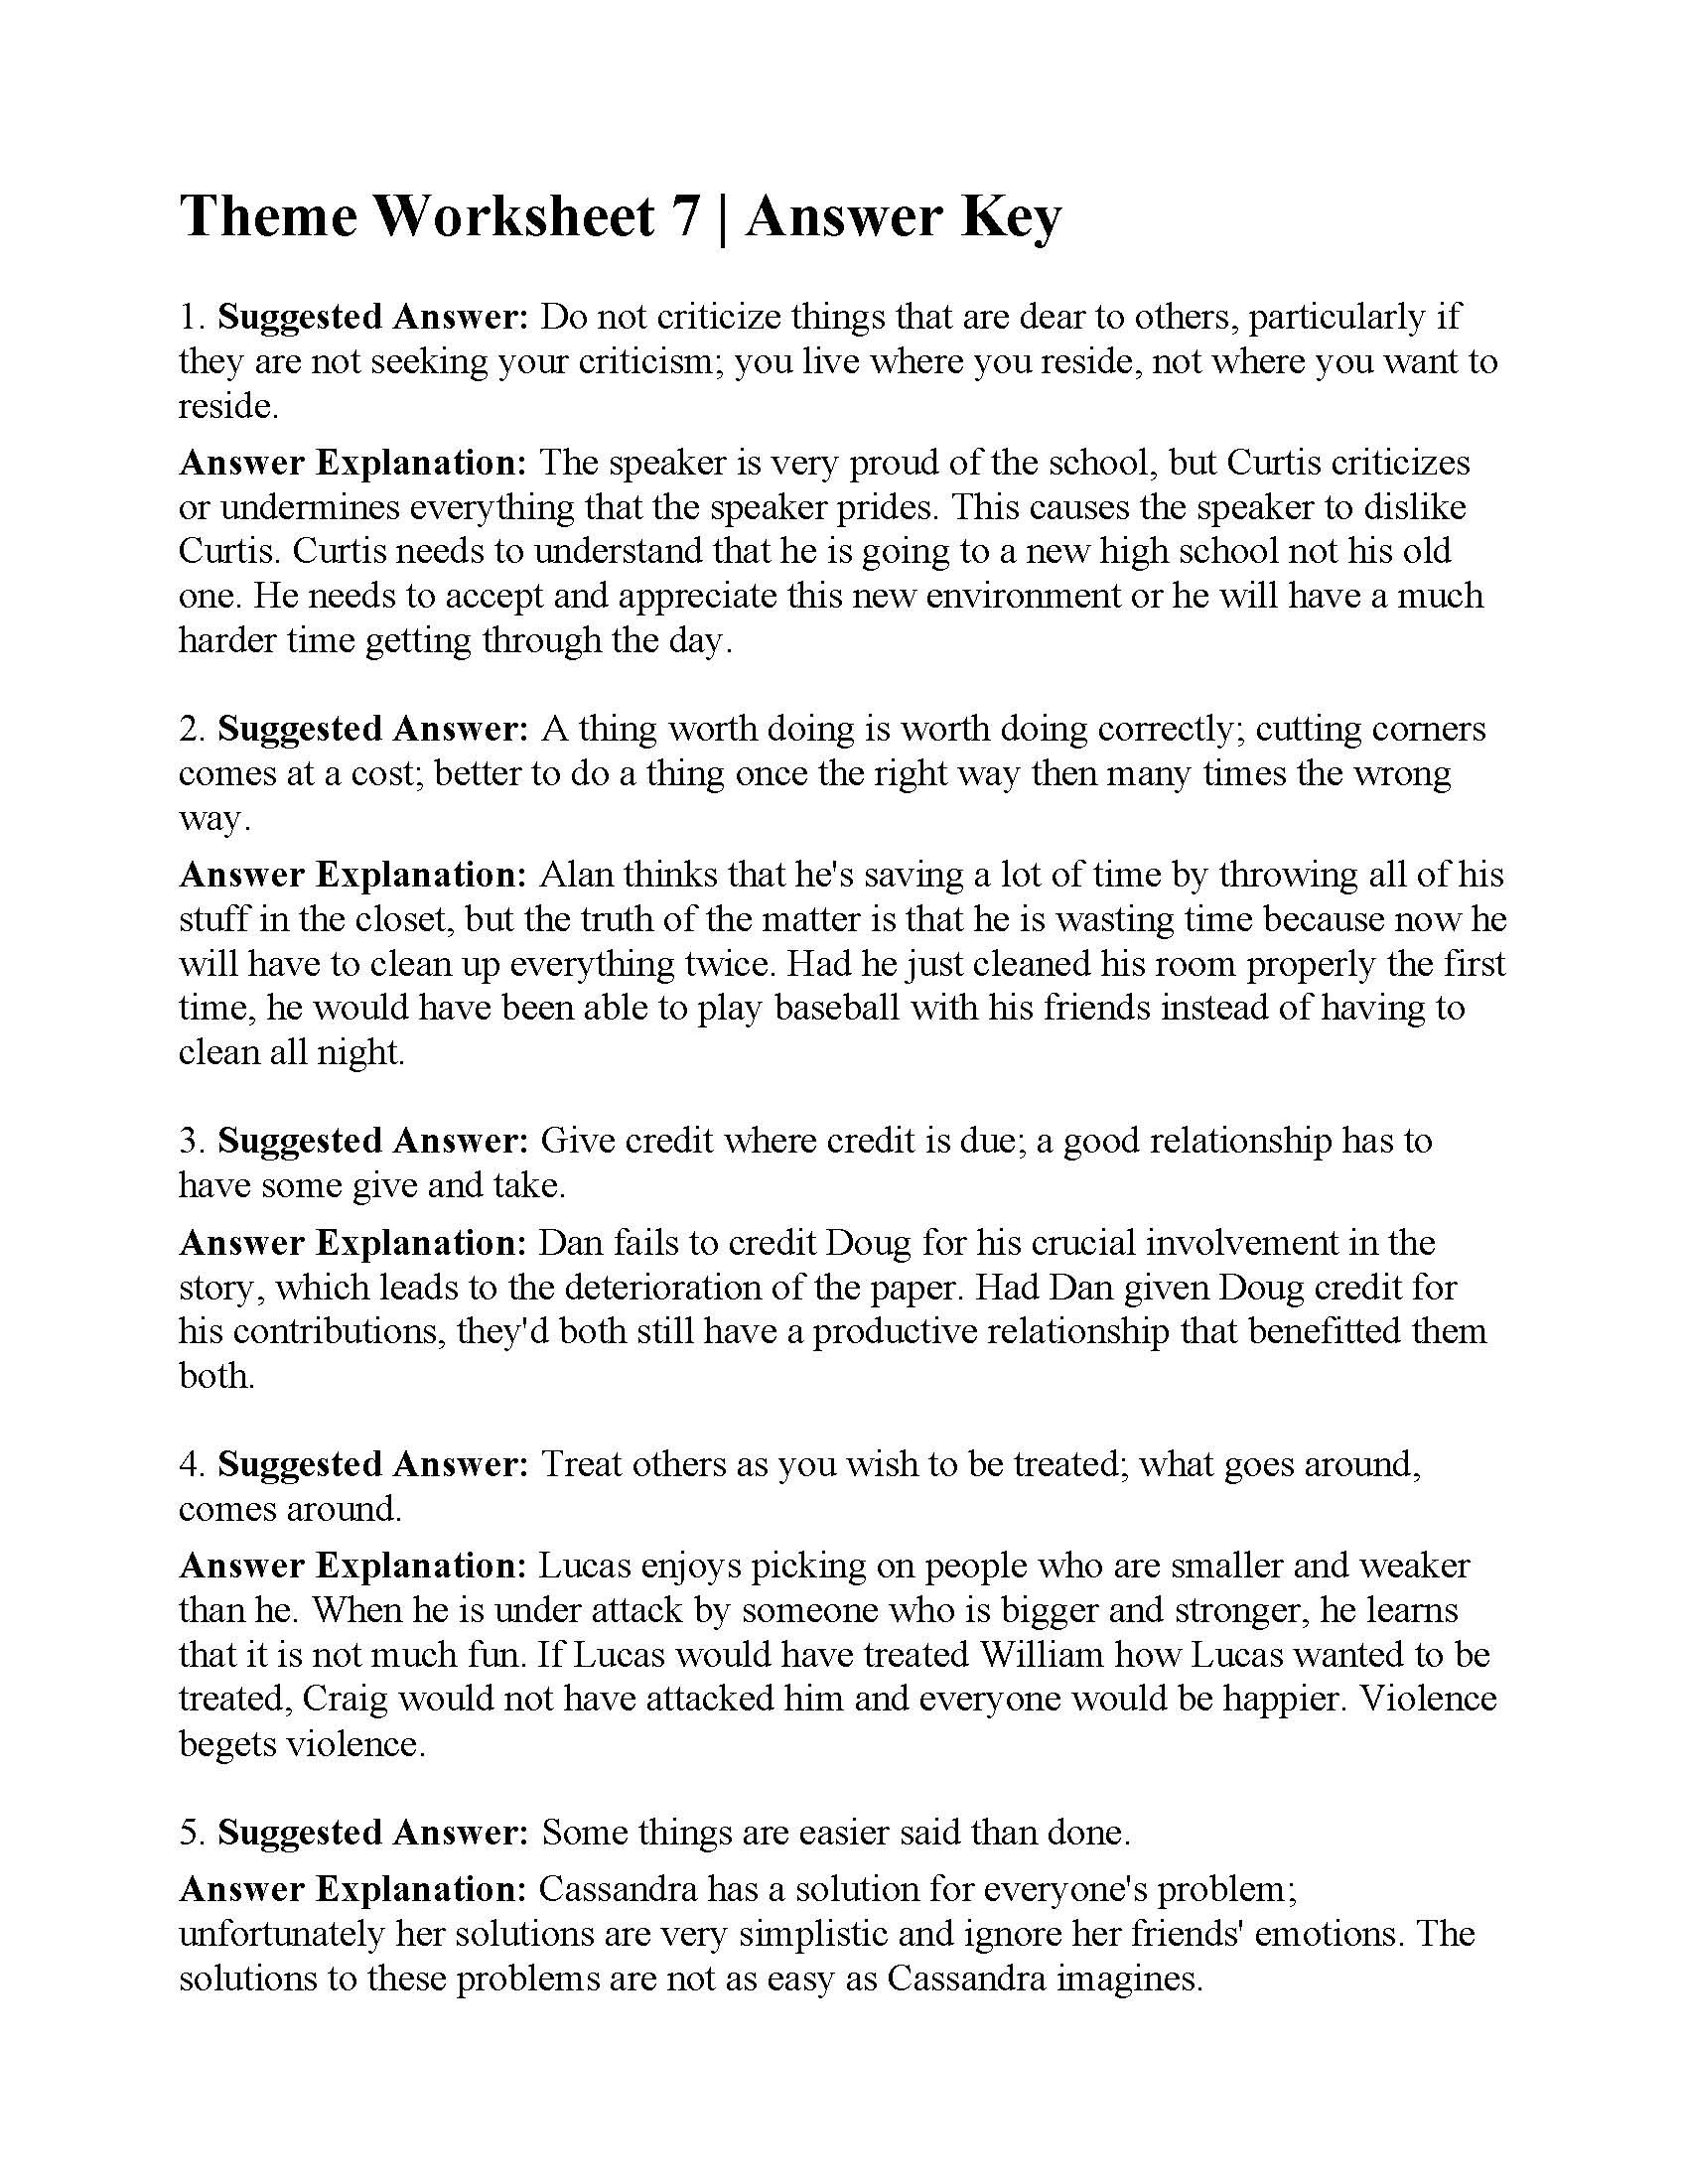 Theme Worksheet Grade 4 theme Worksheet 7